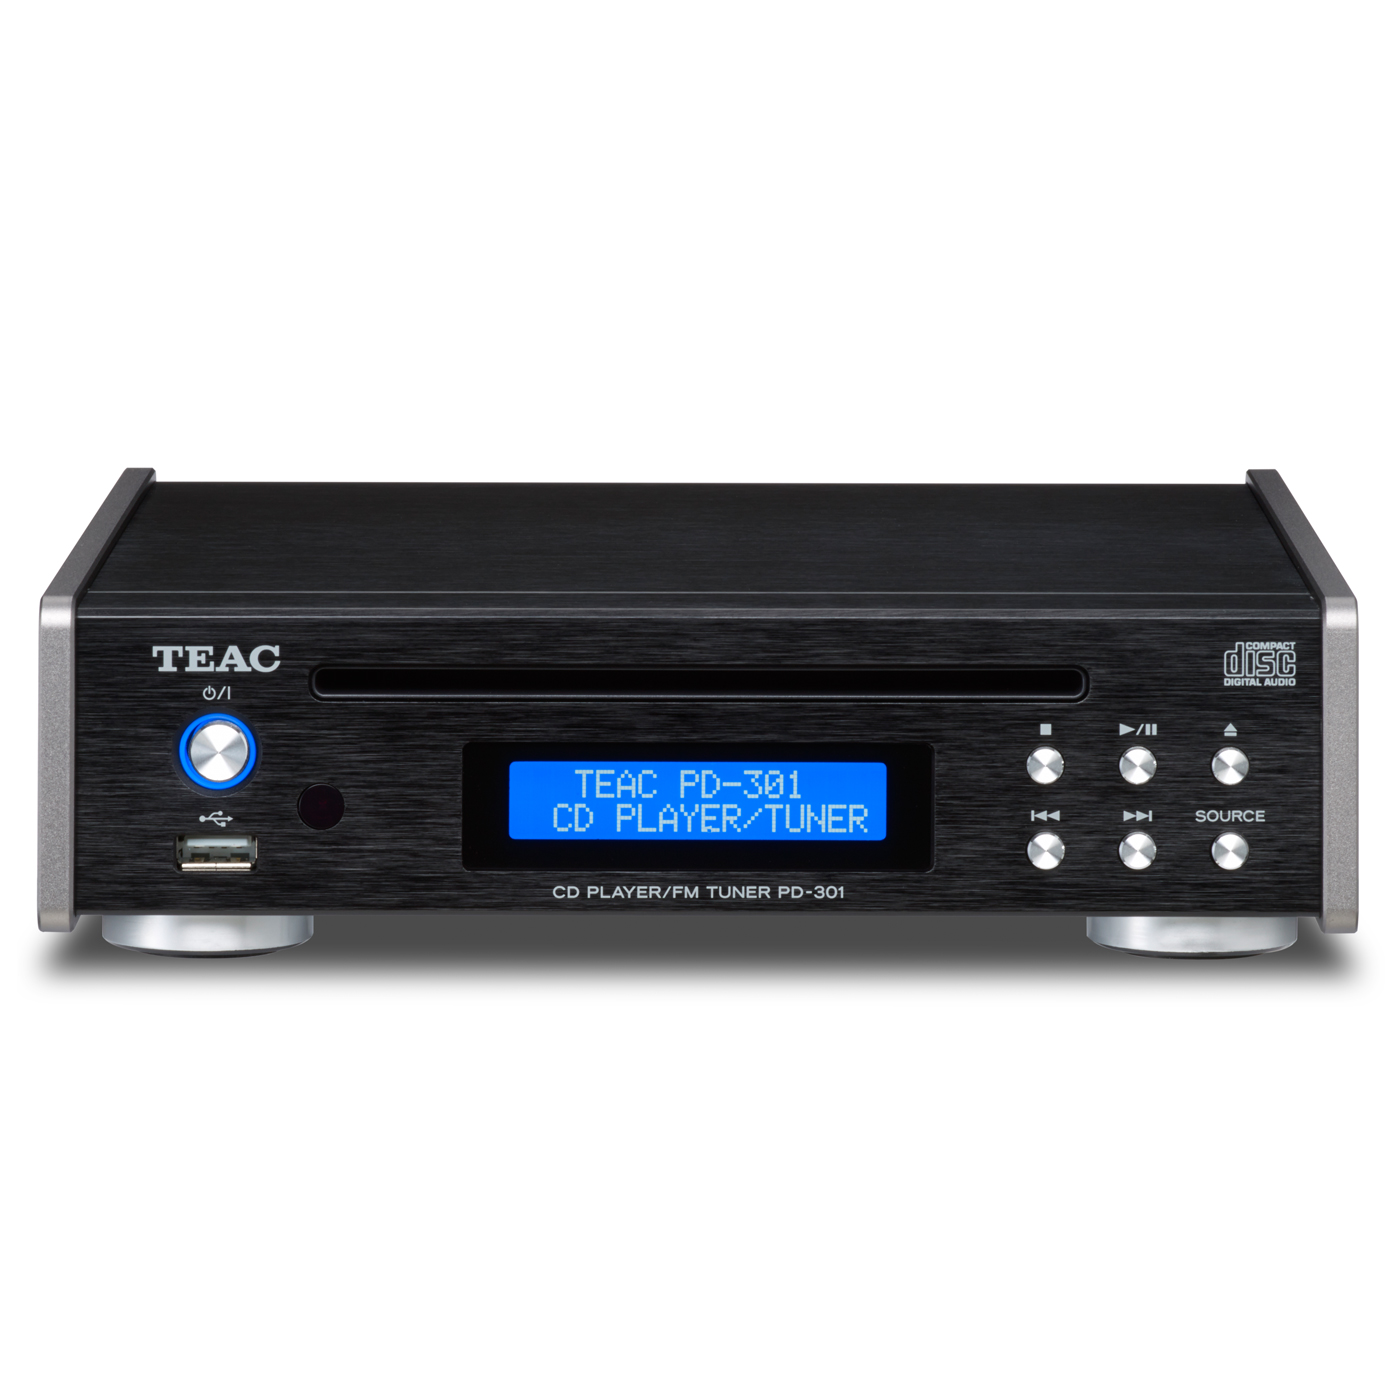 TEAC PD-301 High Quality CD Player With Built-In FM Tuner (Black) by TEAC